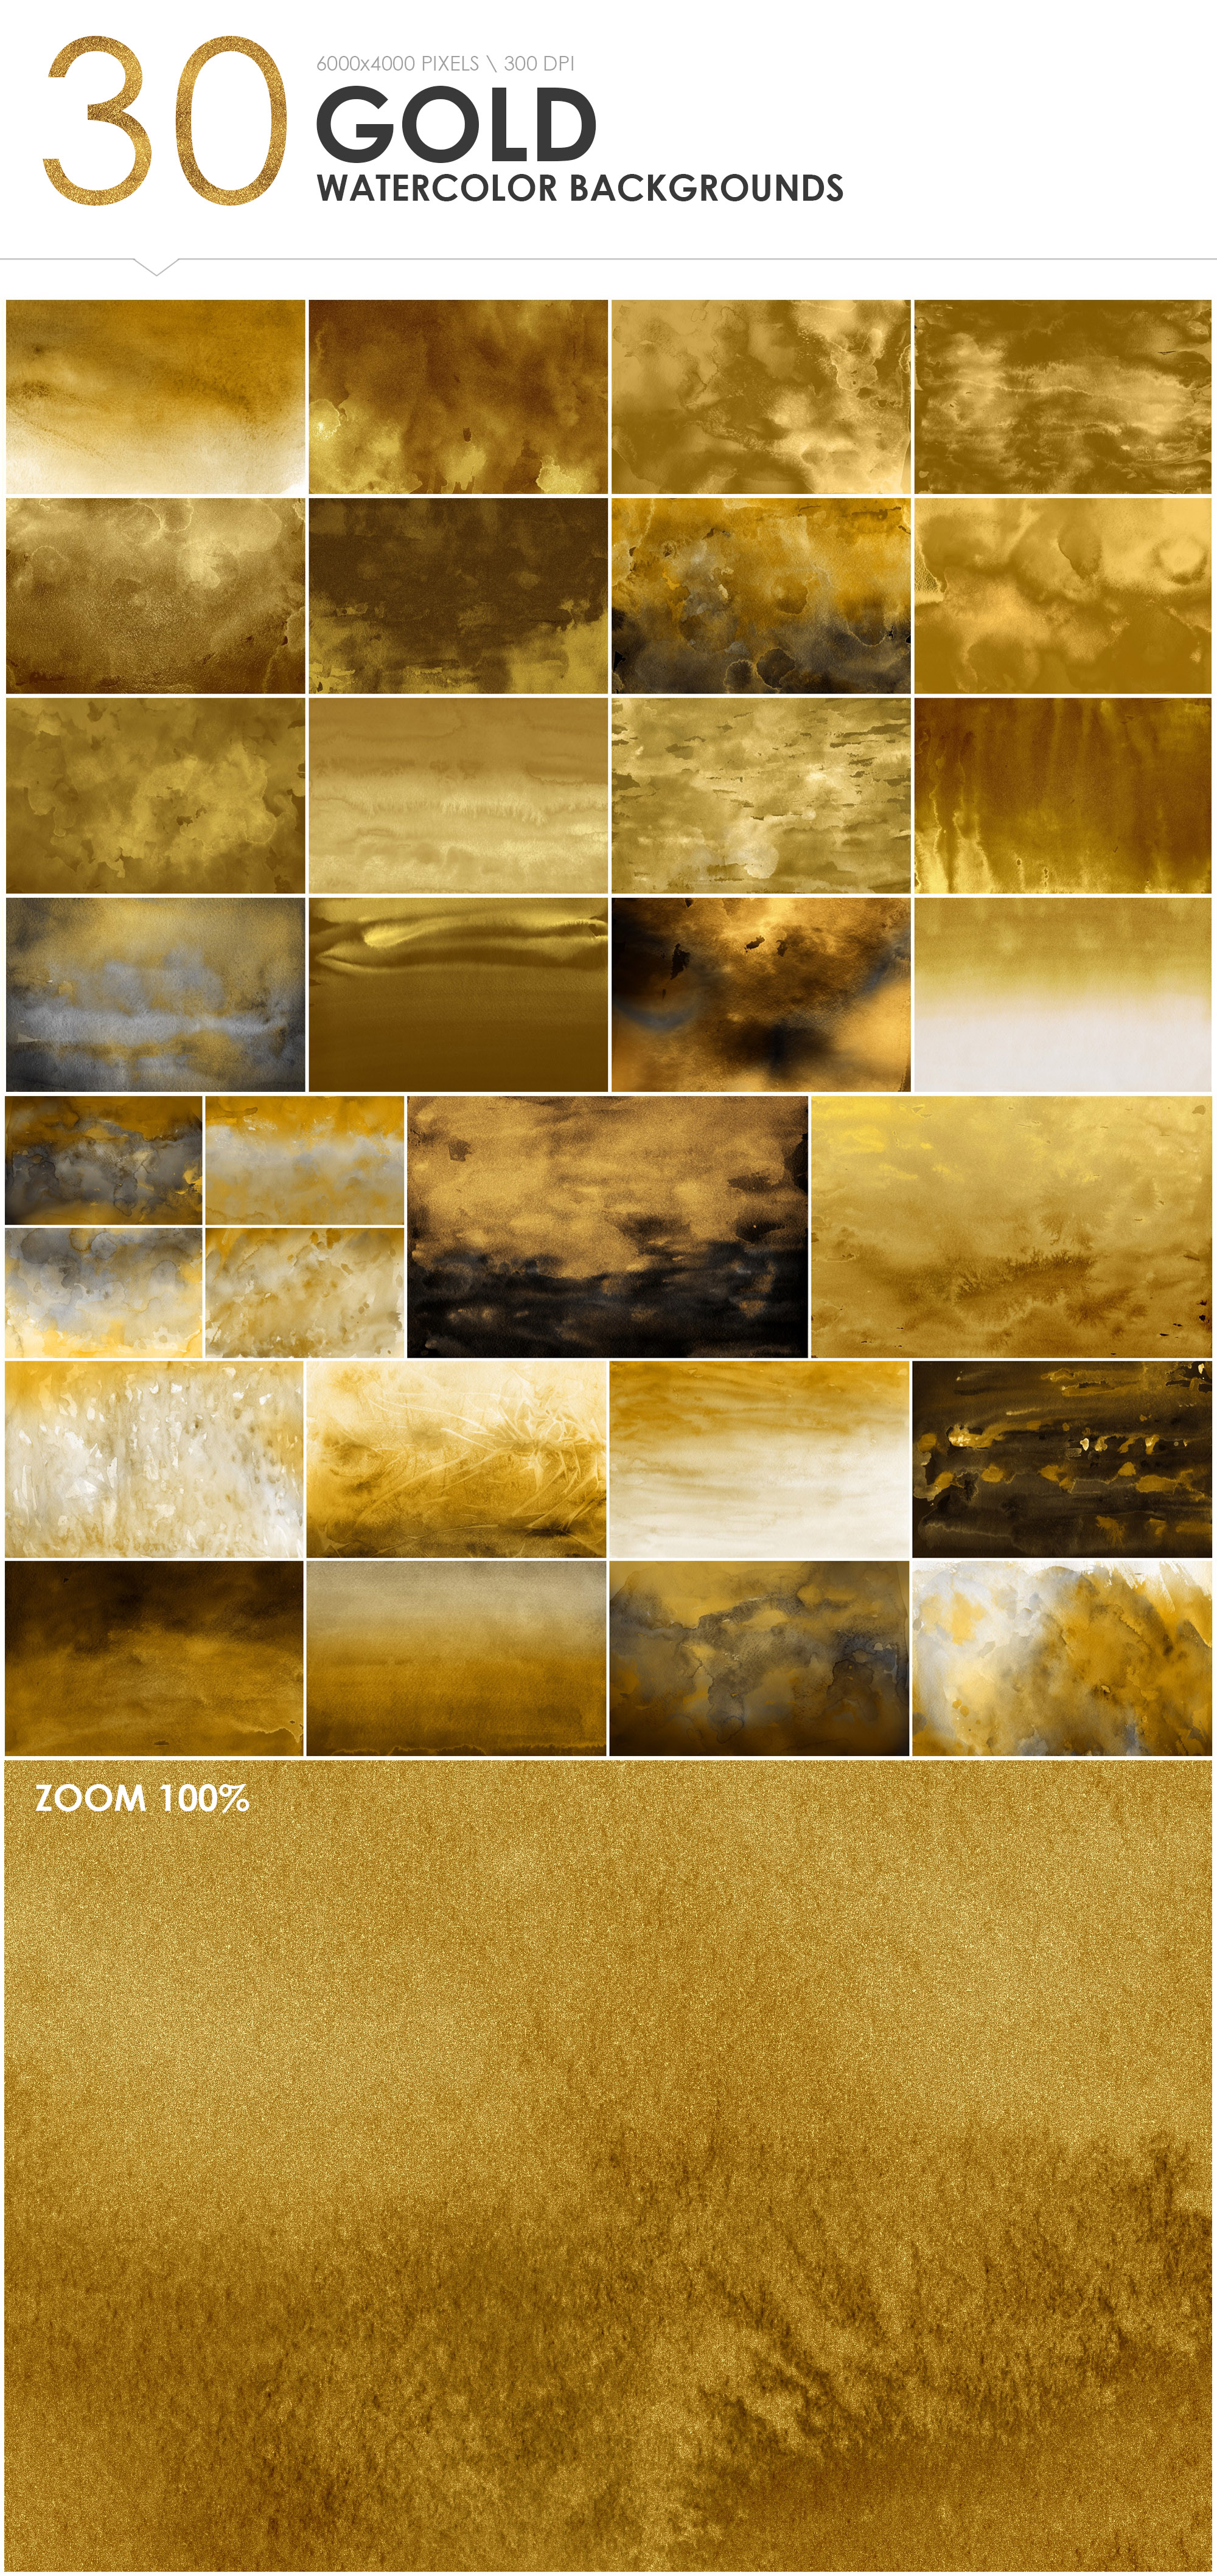 300 Diverse Watercolor Backgrounds example image 6